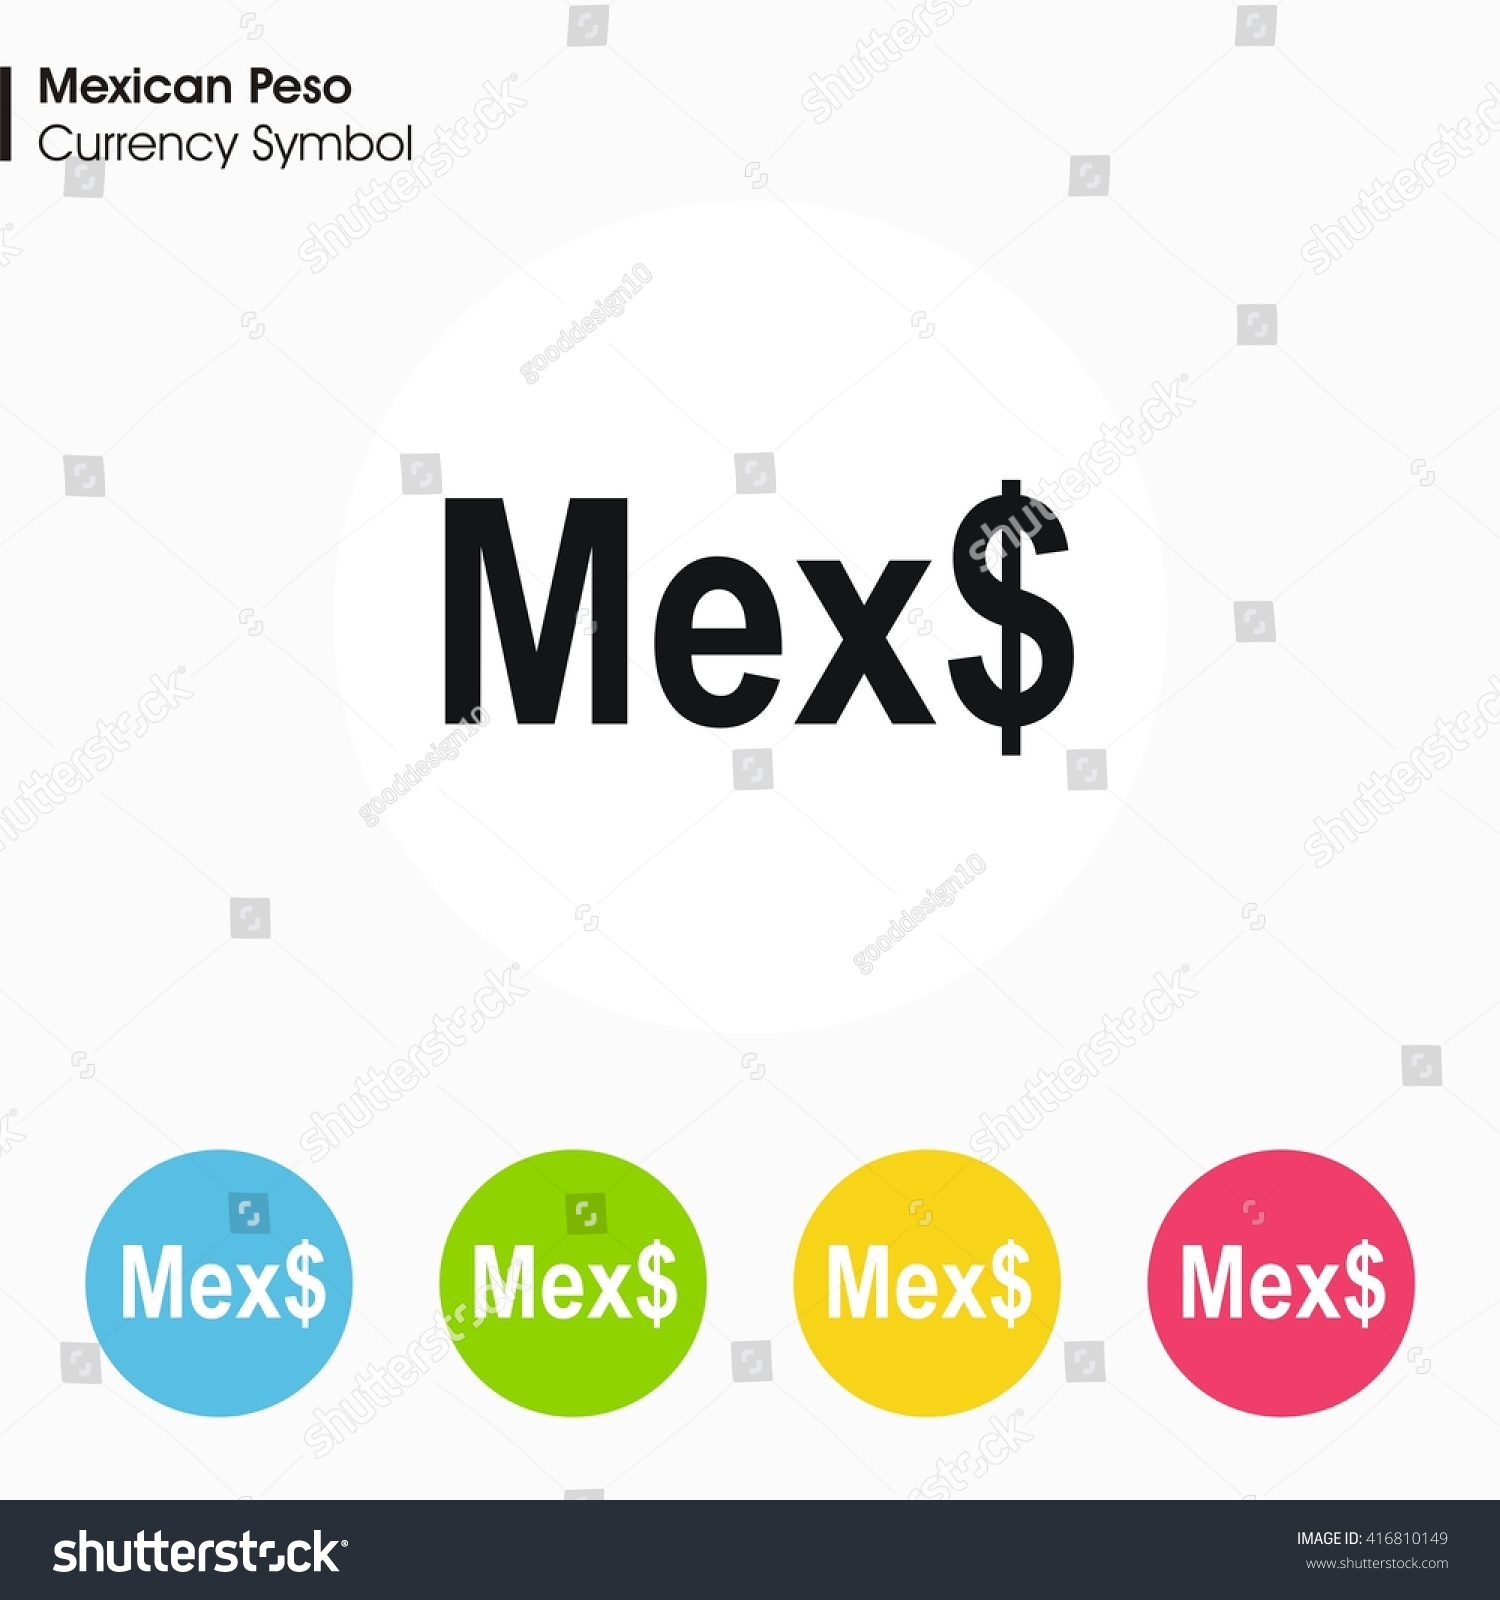 Mexican Money Symbol Images Meaning Of This Symbol